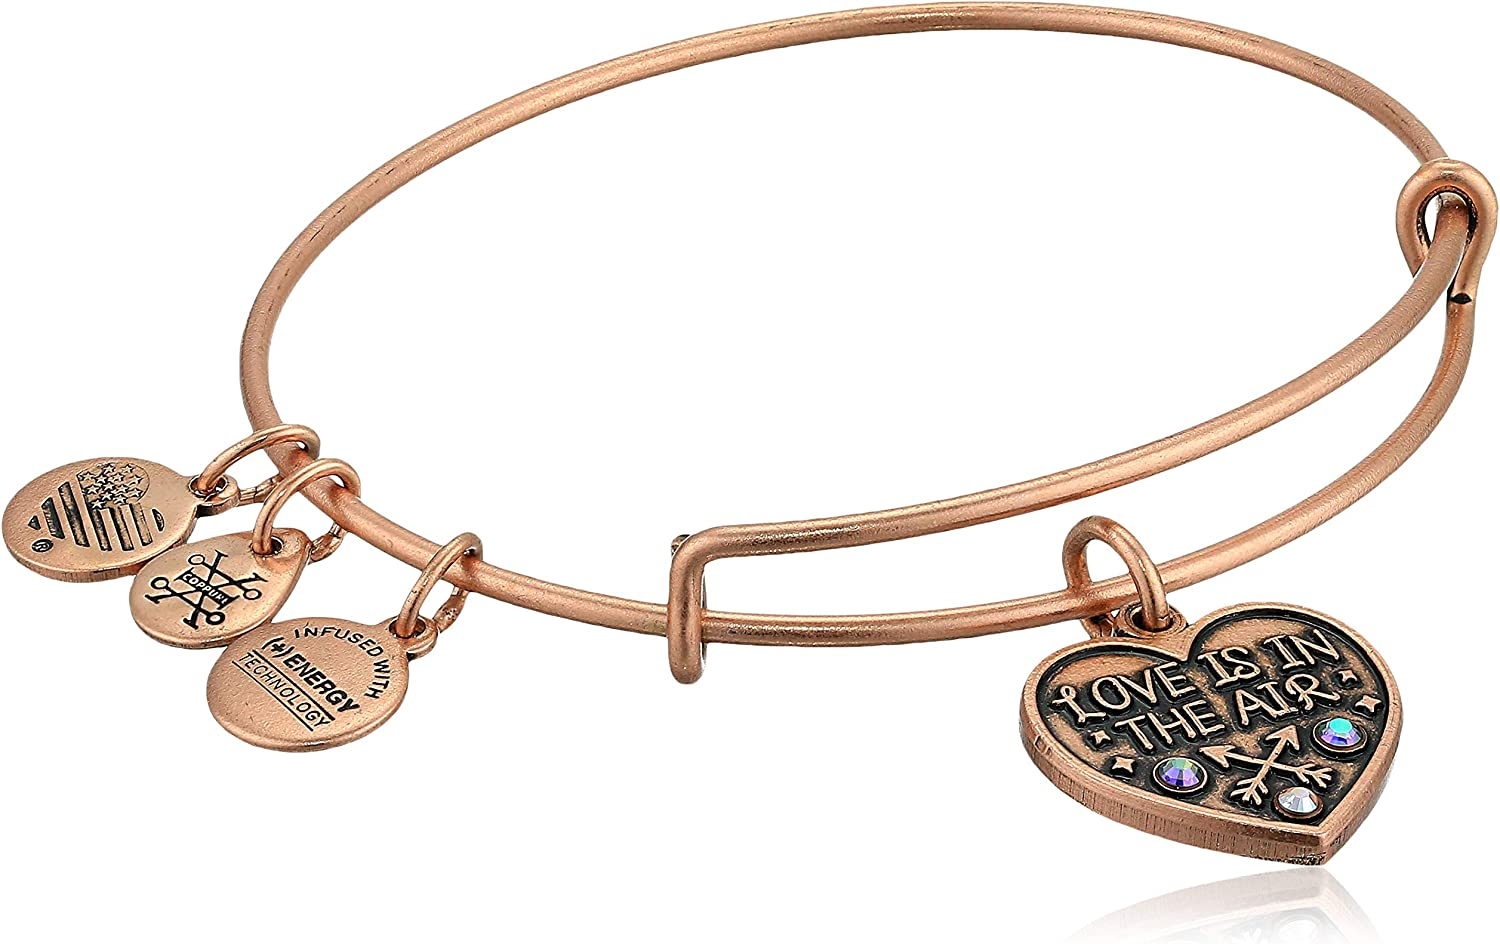 Alex and Ani Women's Love is in The Air Charm Bangle Bracelet, Rafaelian Antique Rose, Expandable